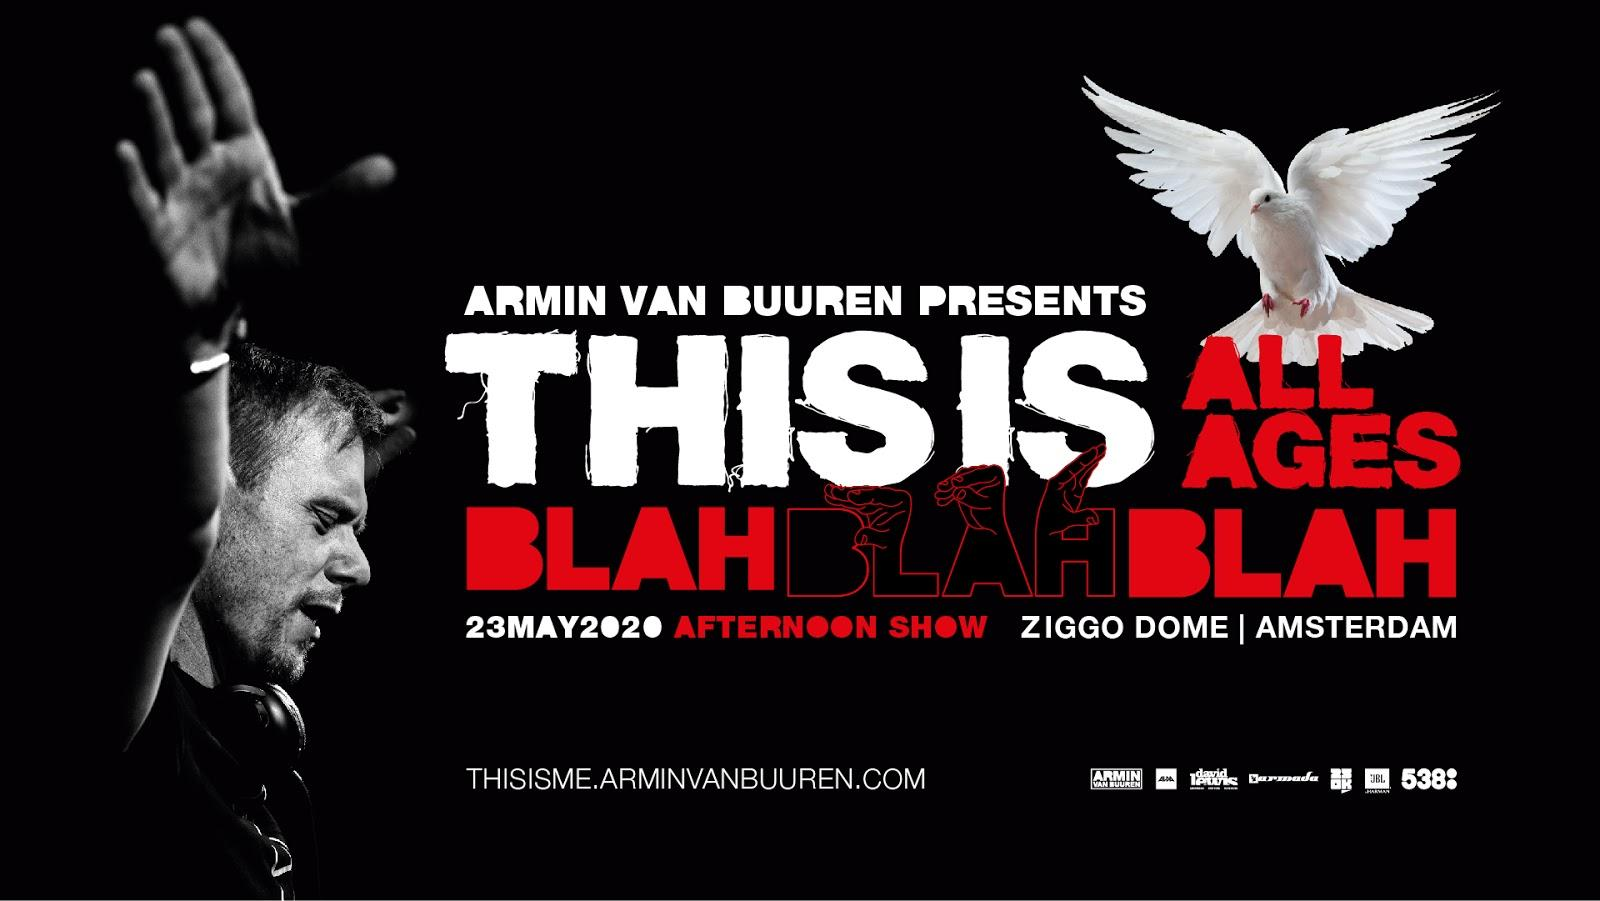 Armin van Buuren announces special all-ages 'This is Blah Blah Blah' show!